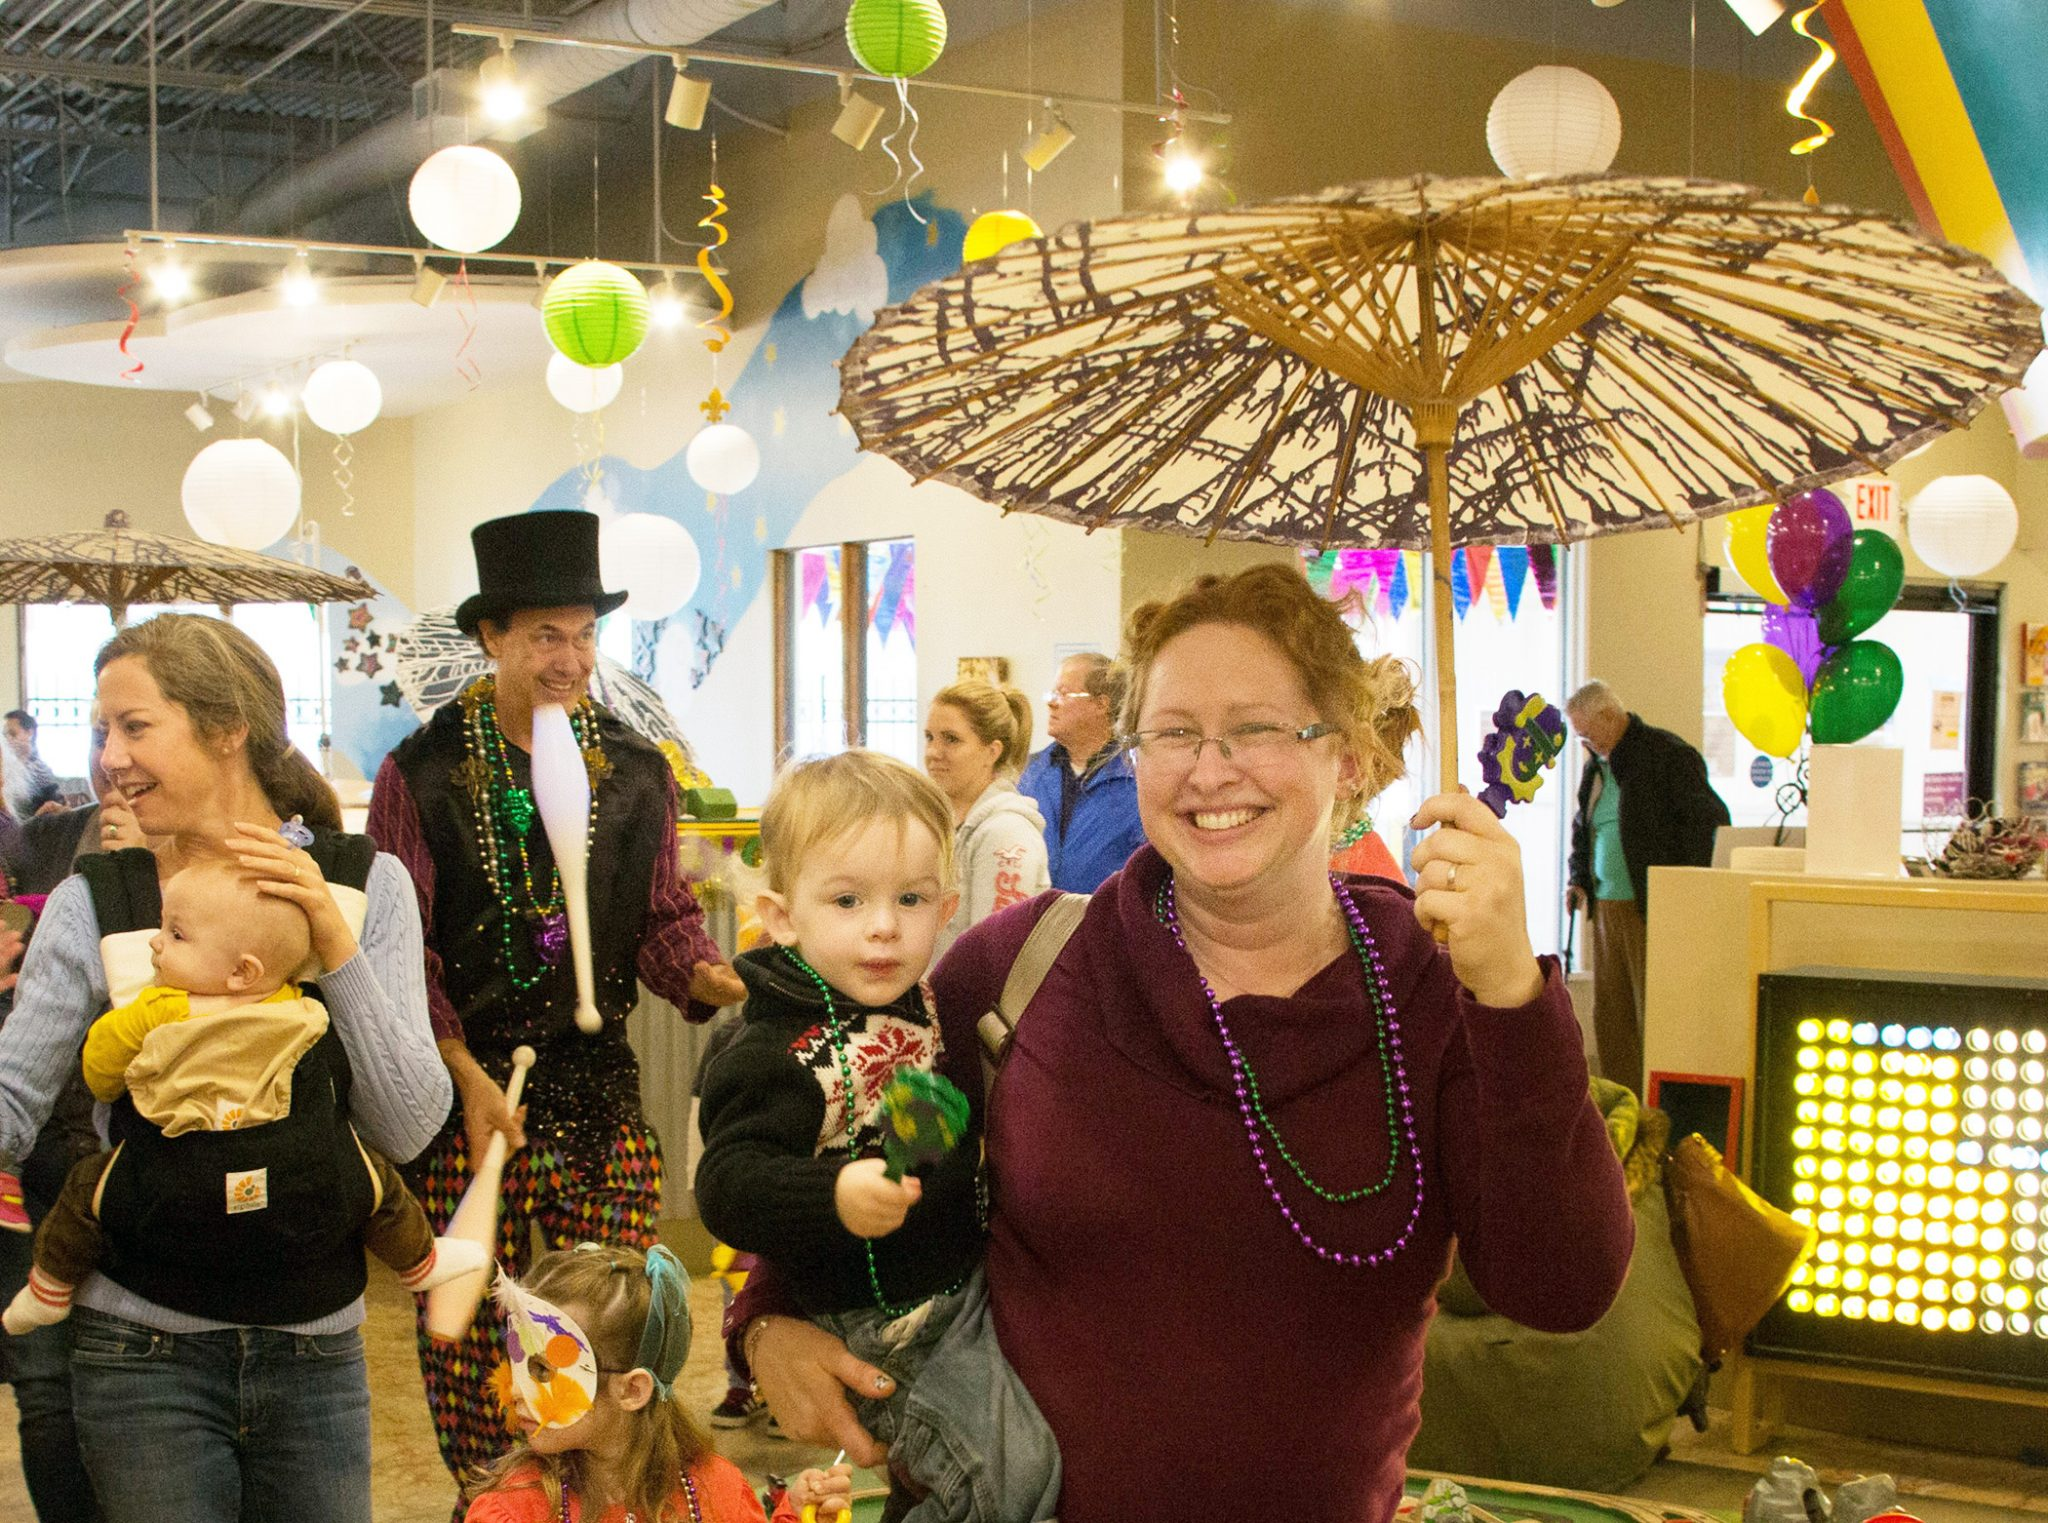 Mardi Gras Celebration Is Packed with Fun, Food and Parades — The Woodlands Children's Museum hosts party for families on Tuesday, Feb. 13